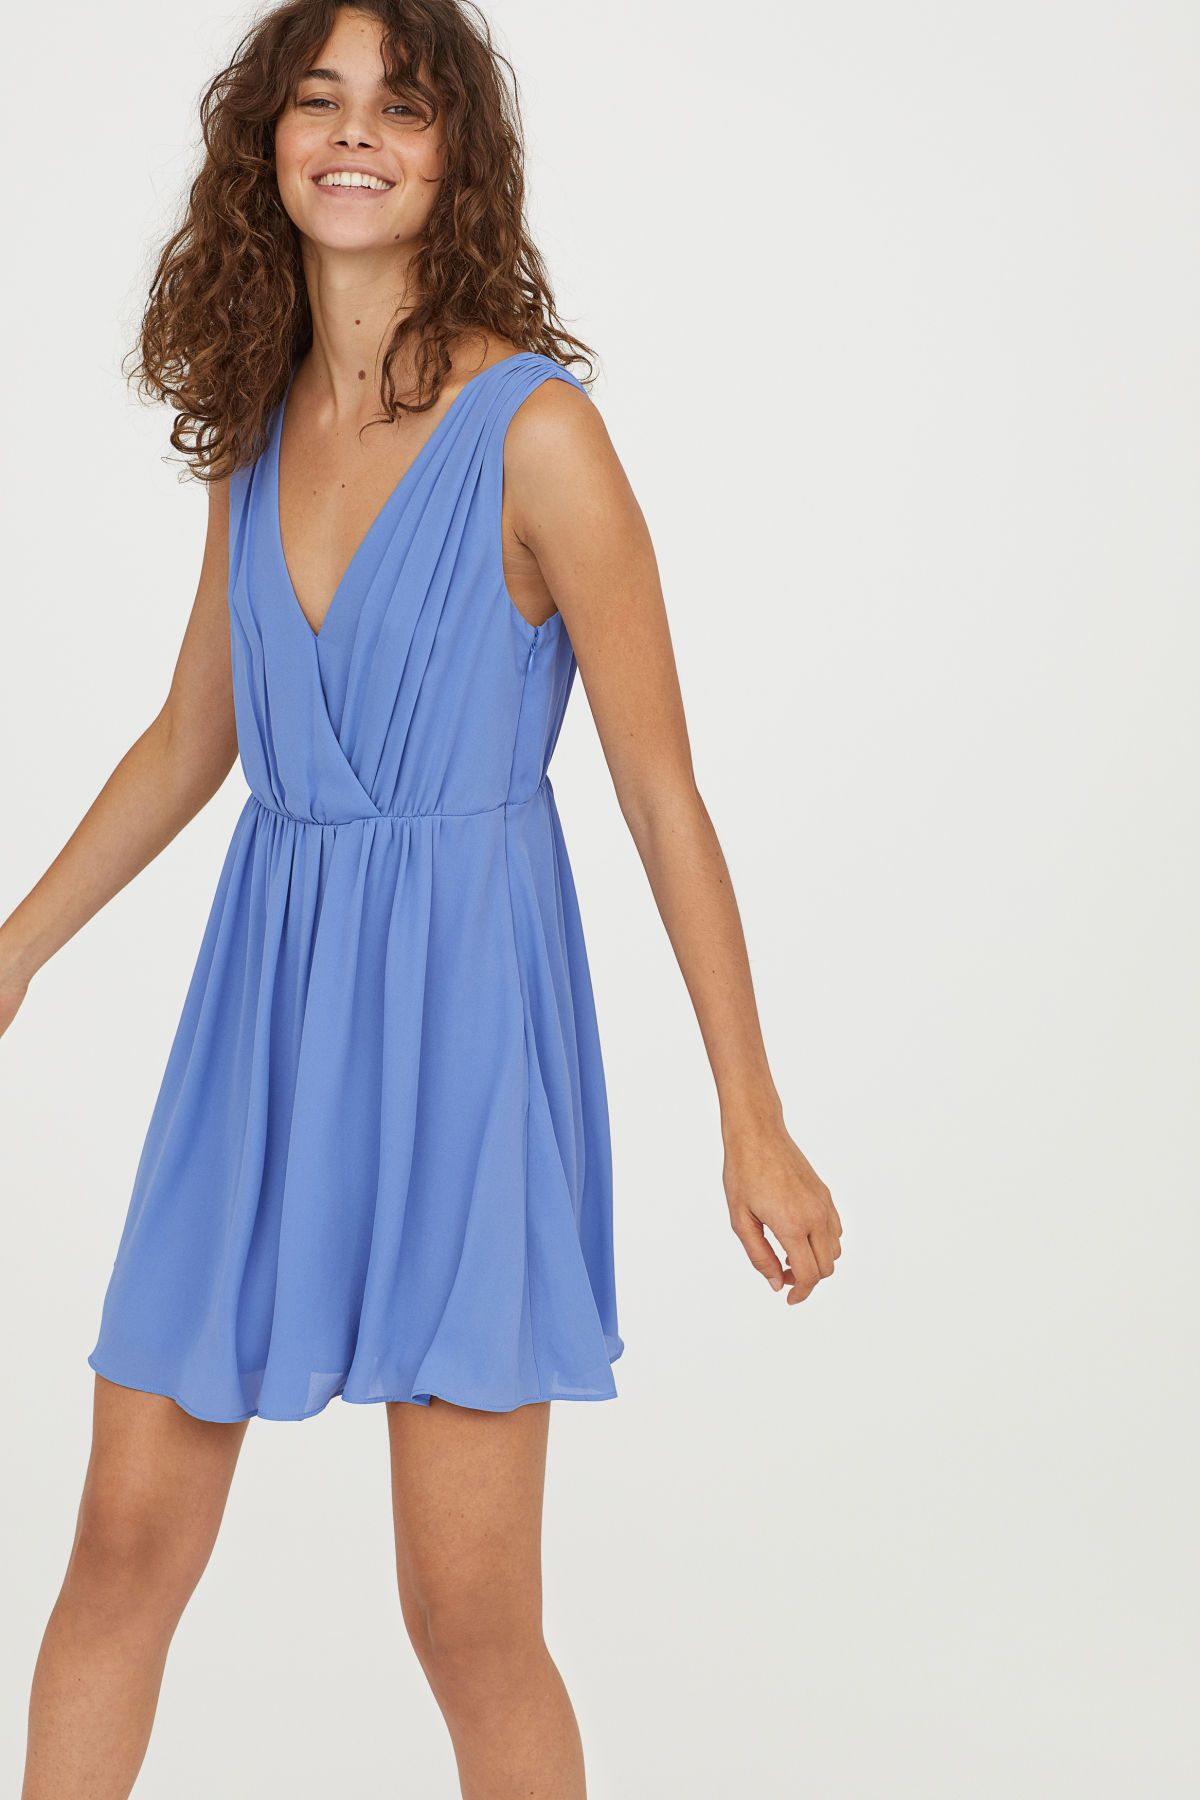 Light blue sleeveless dress in airy woven fabric pleated vneck